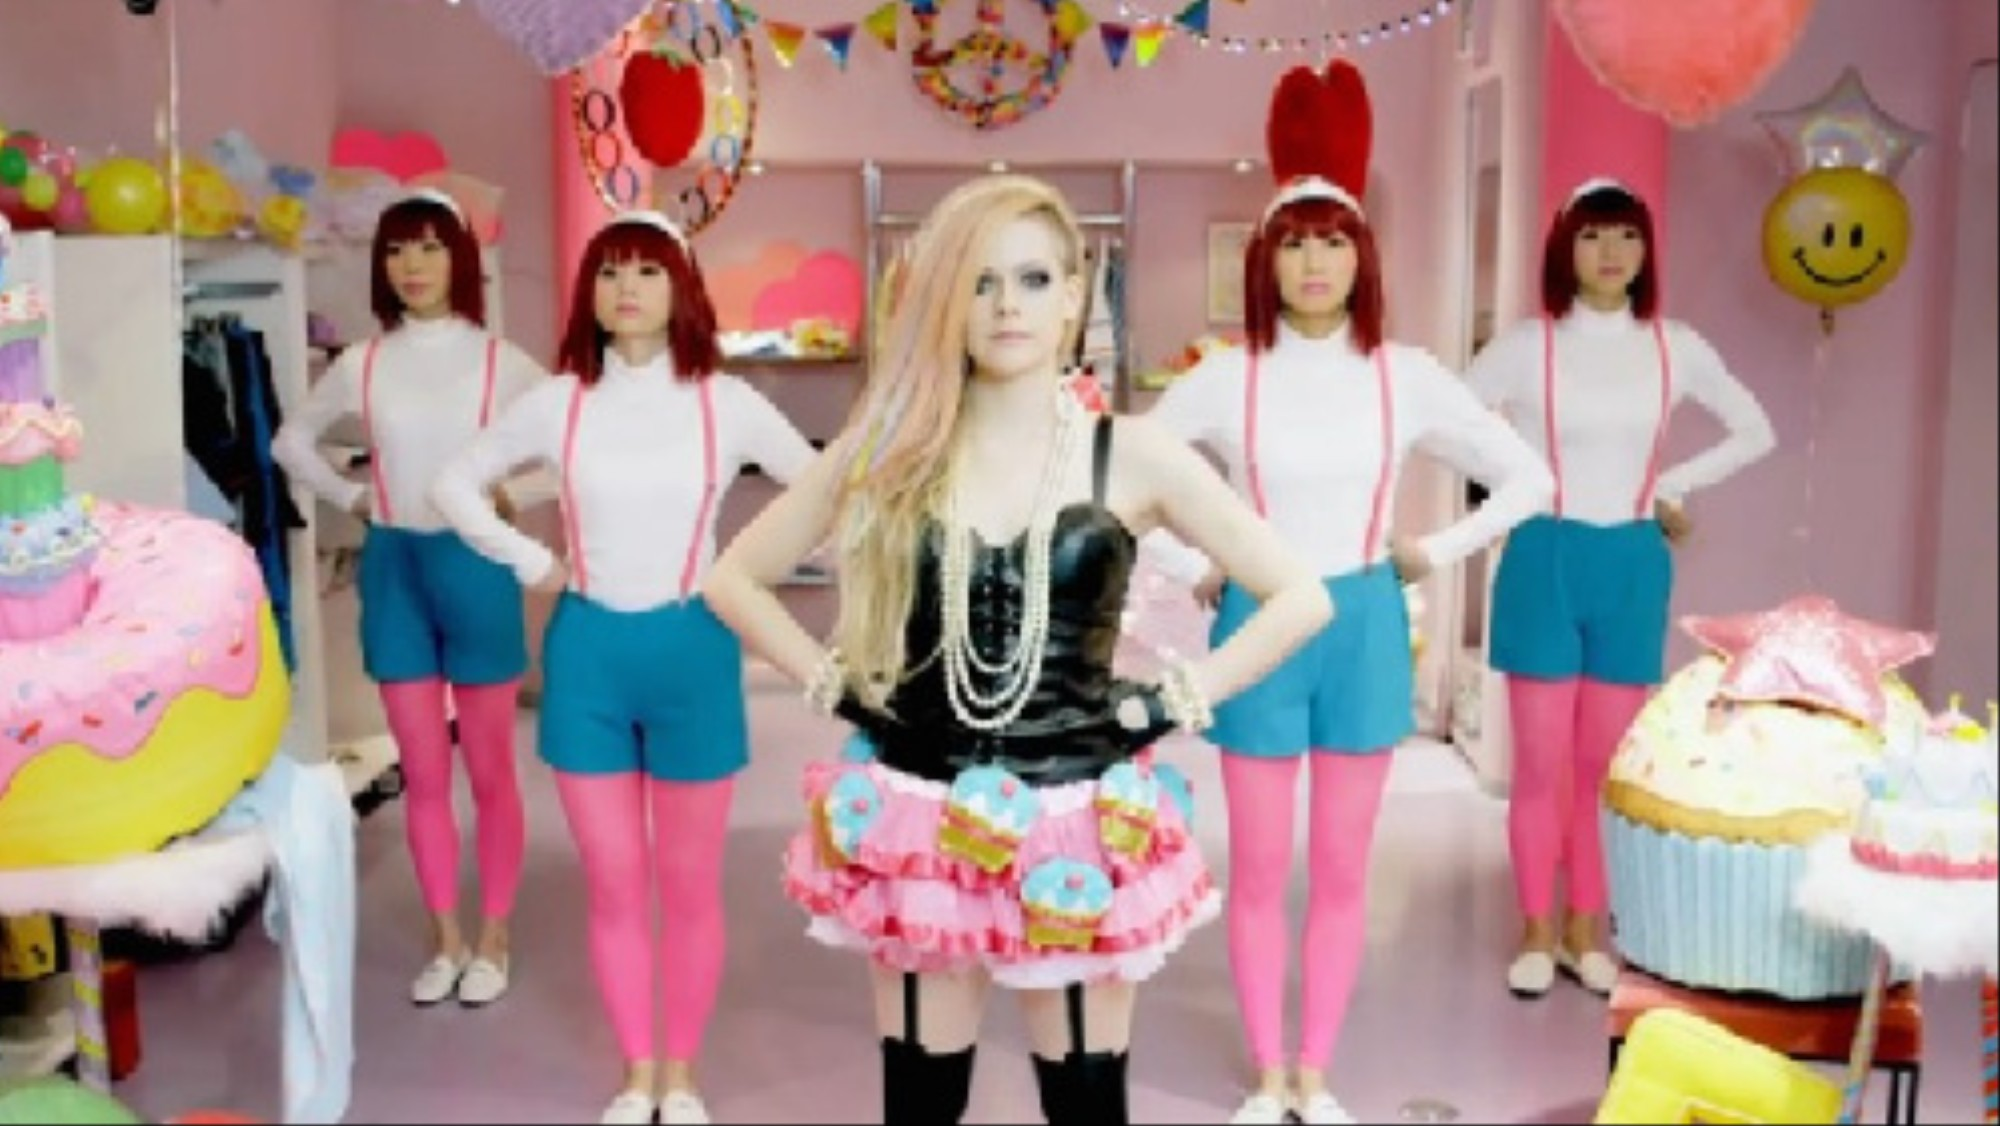 fbb7f8f95 What I Learned About Style from Avril Lavigne's